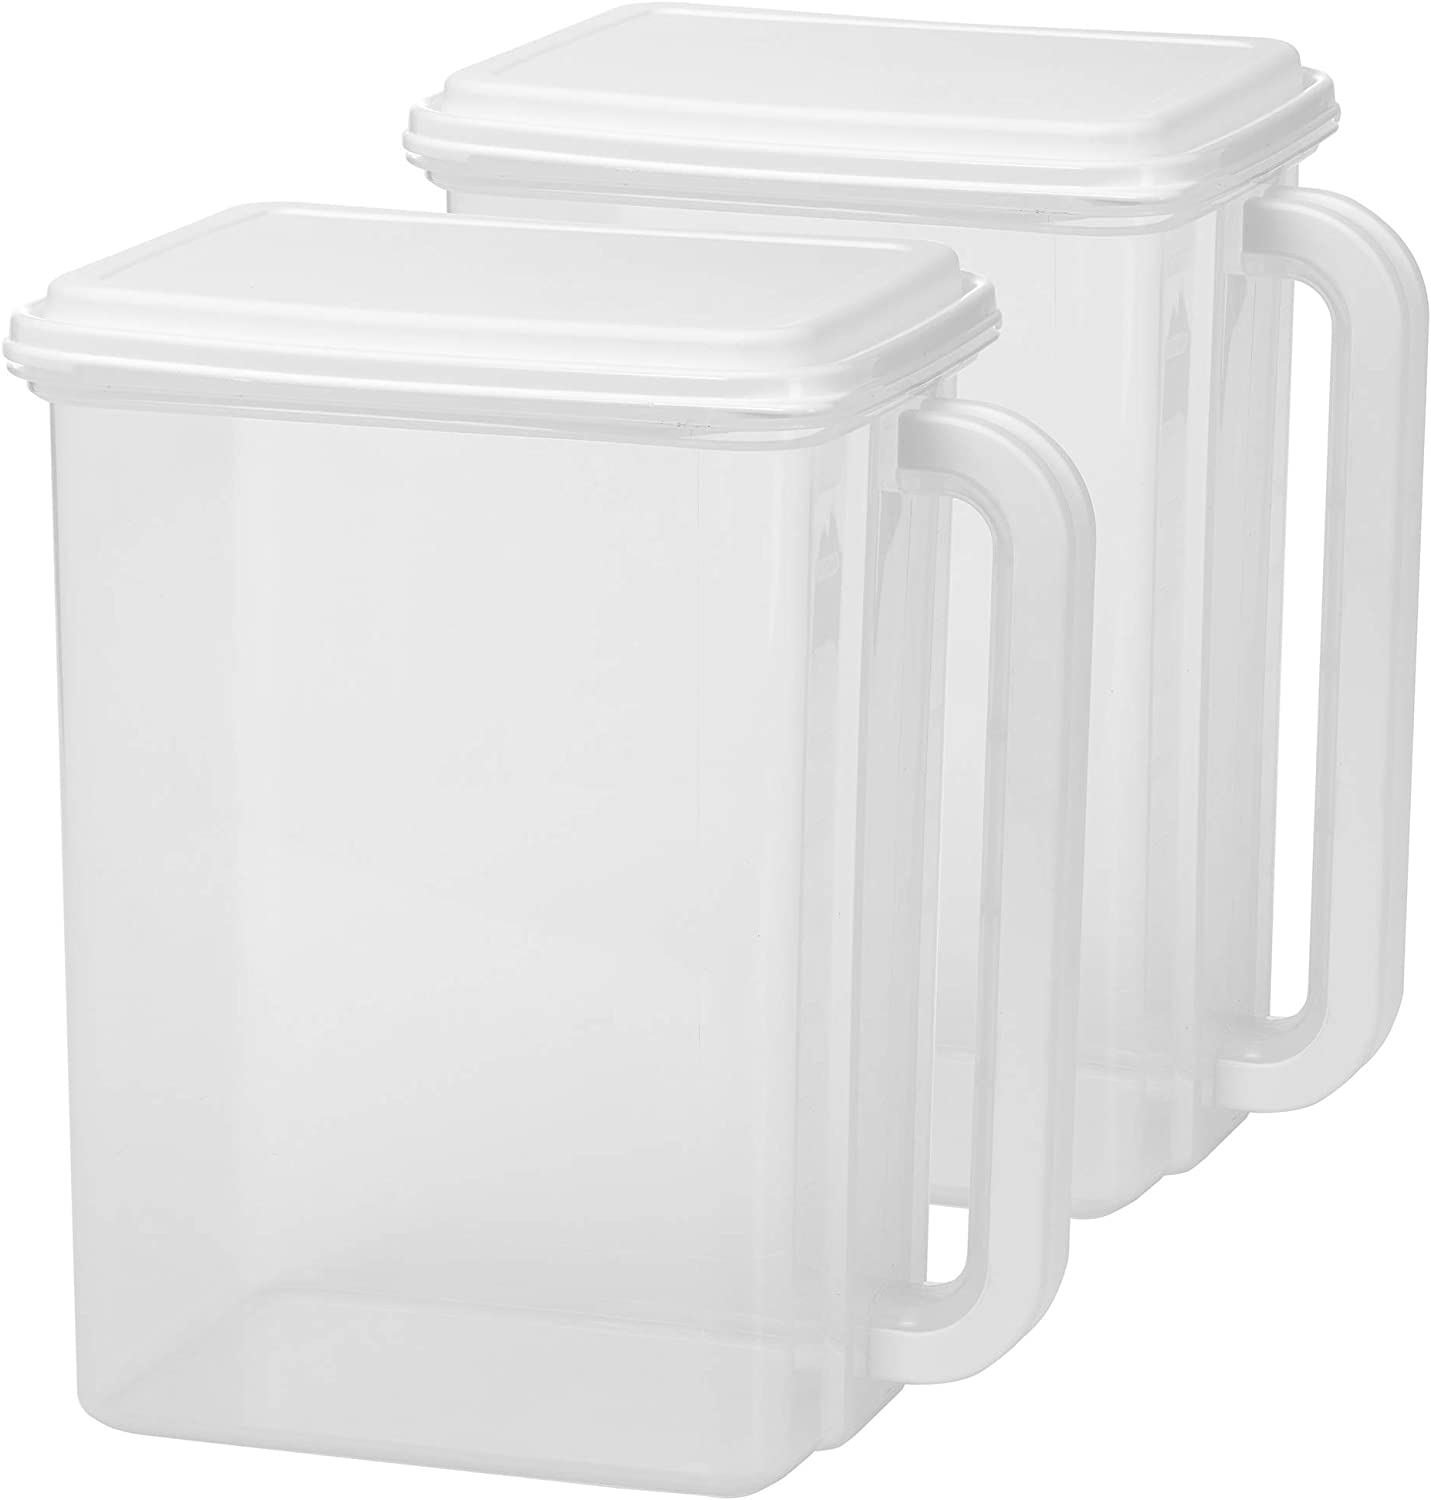 Buddeez B00253 Store 'n Pour Storage Dispenser 46 Cup-White/Clear, 2 Count